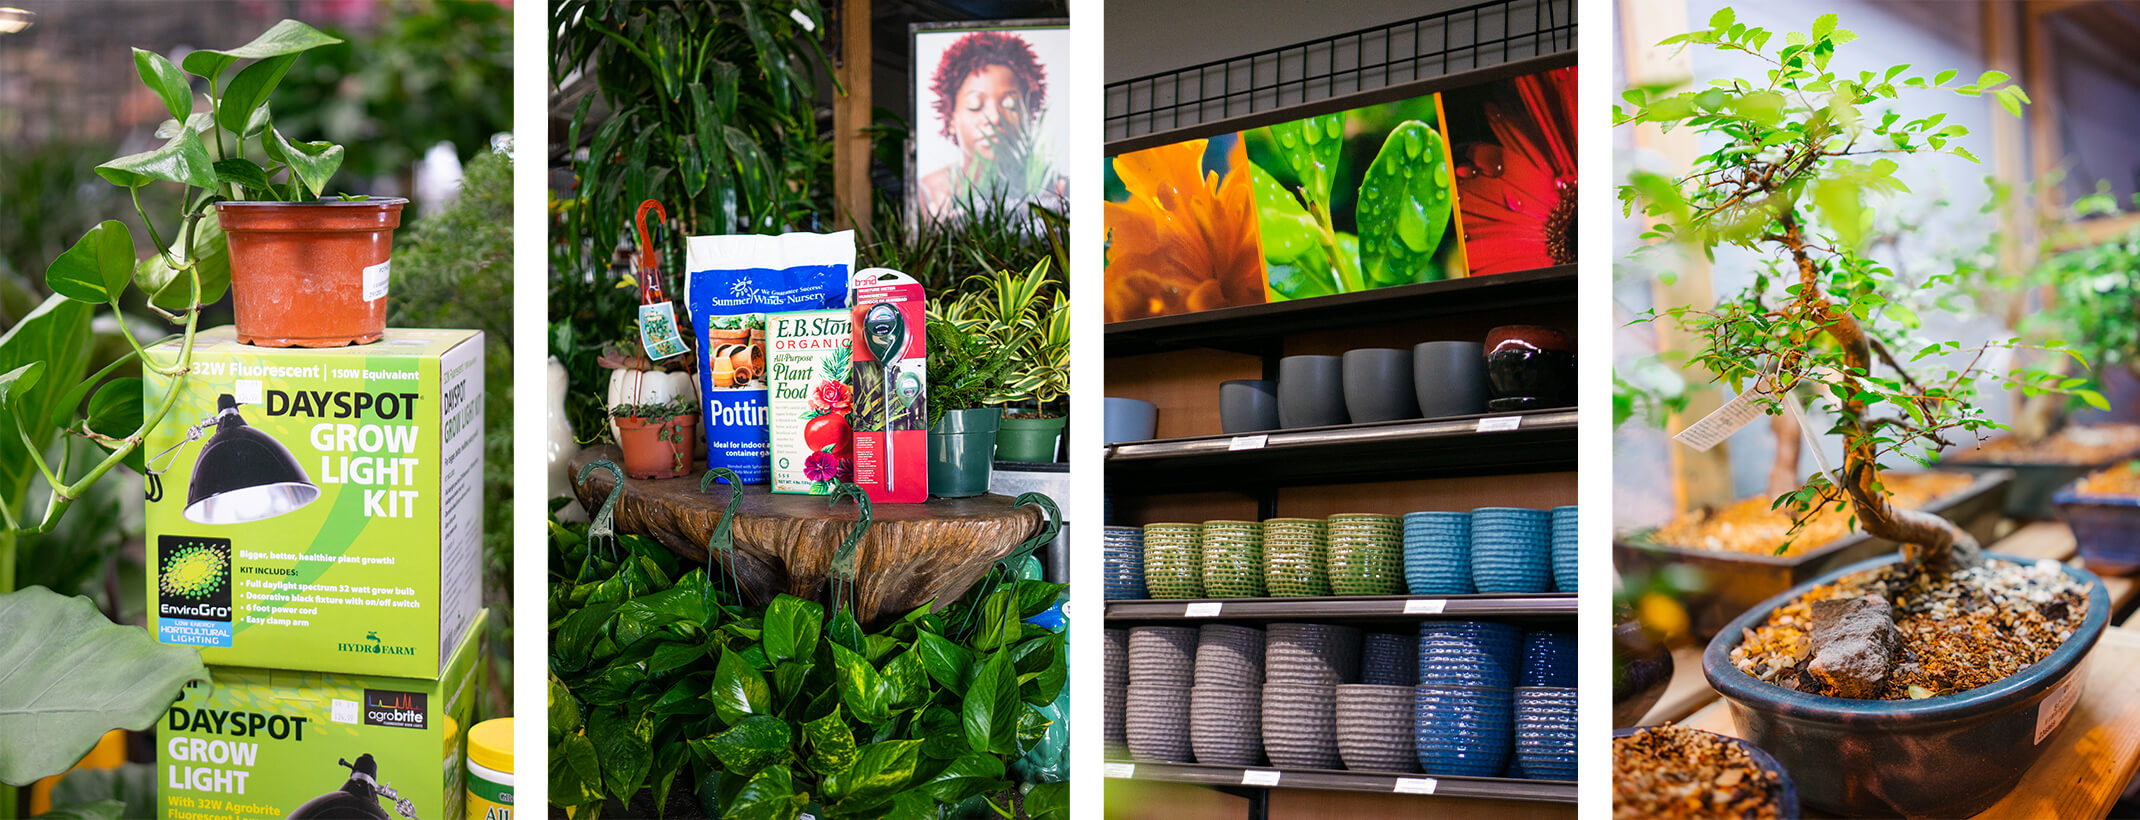 4 images - Dayspot Grow Light Kits on display near houseplants; a variety of houseplants surrounding summerwinds potting soil, eb stone organics all purpose plant food, and a water meter.; shelves filled with colorful indoor pots and signage; and a closeup of a bonsai tree in a bonsai pot